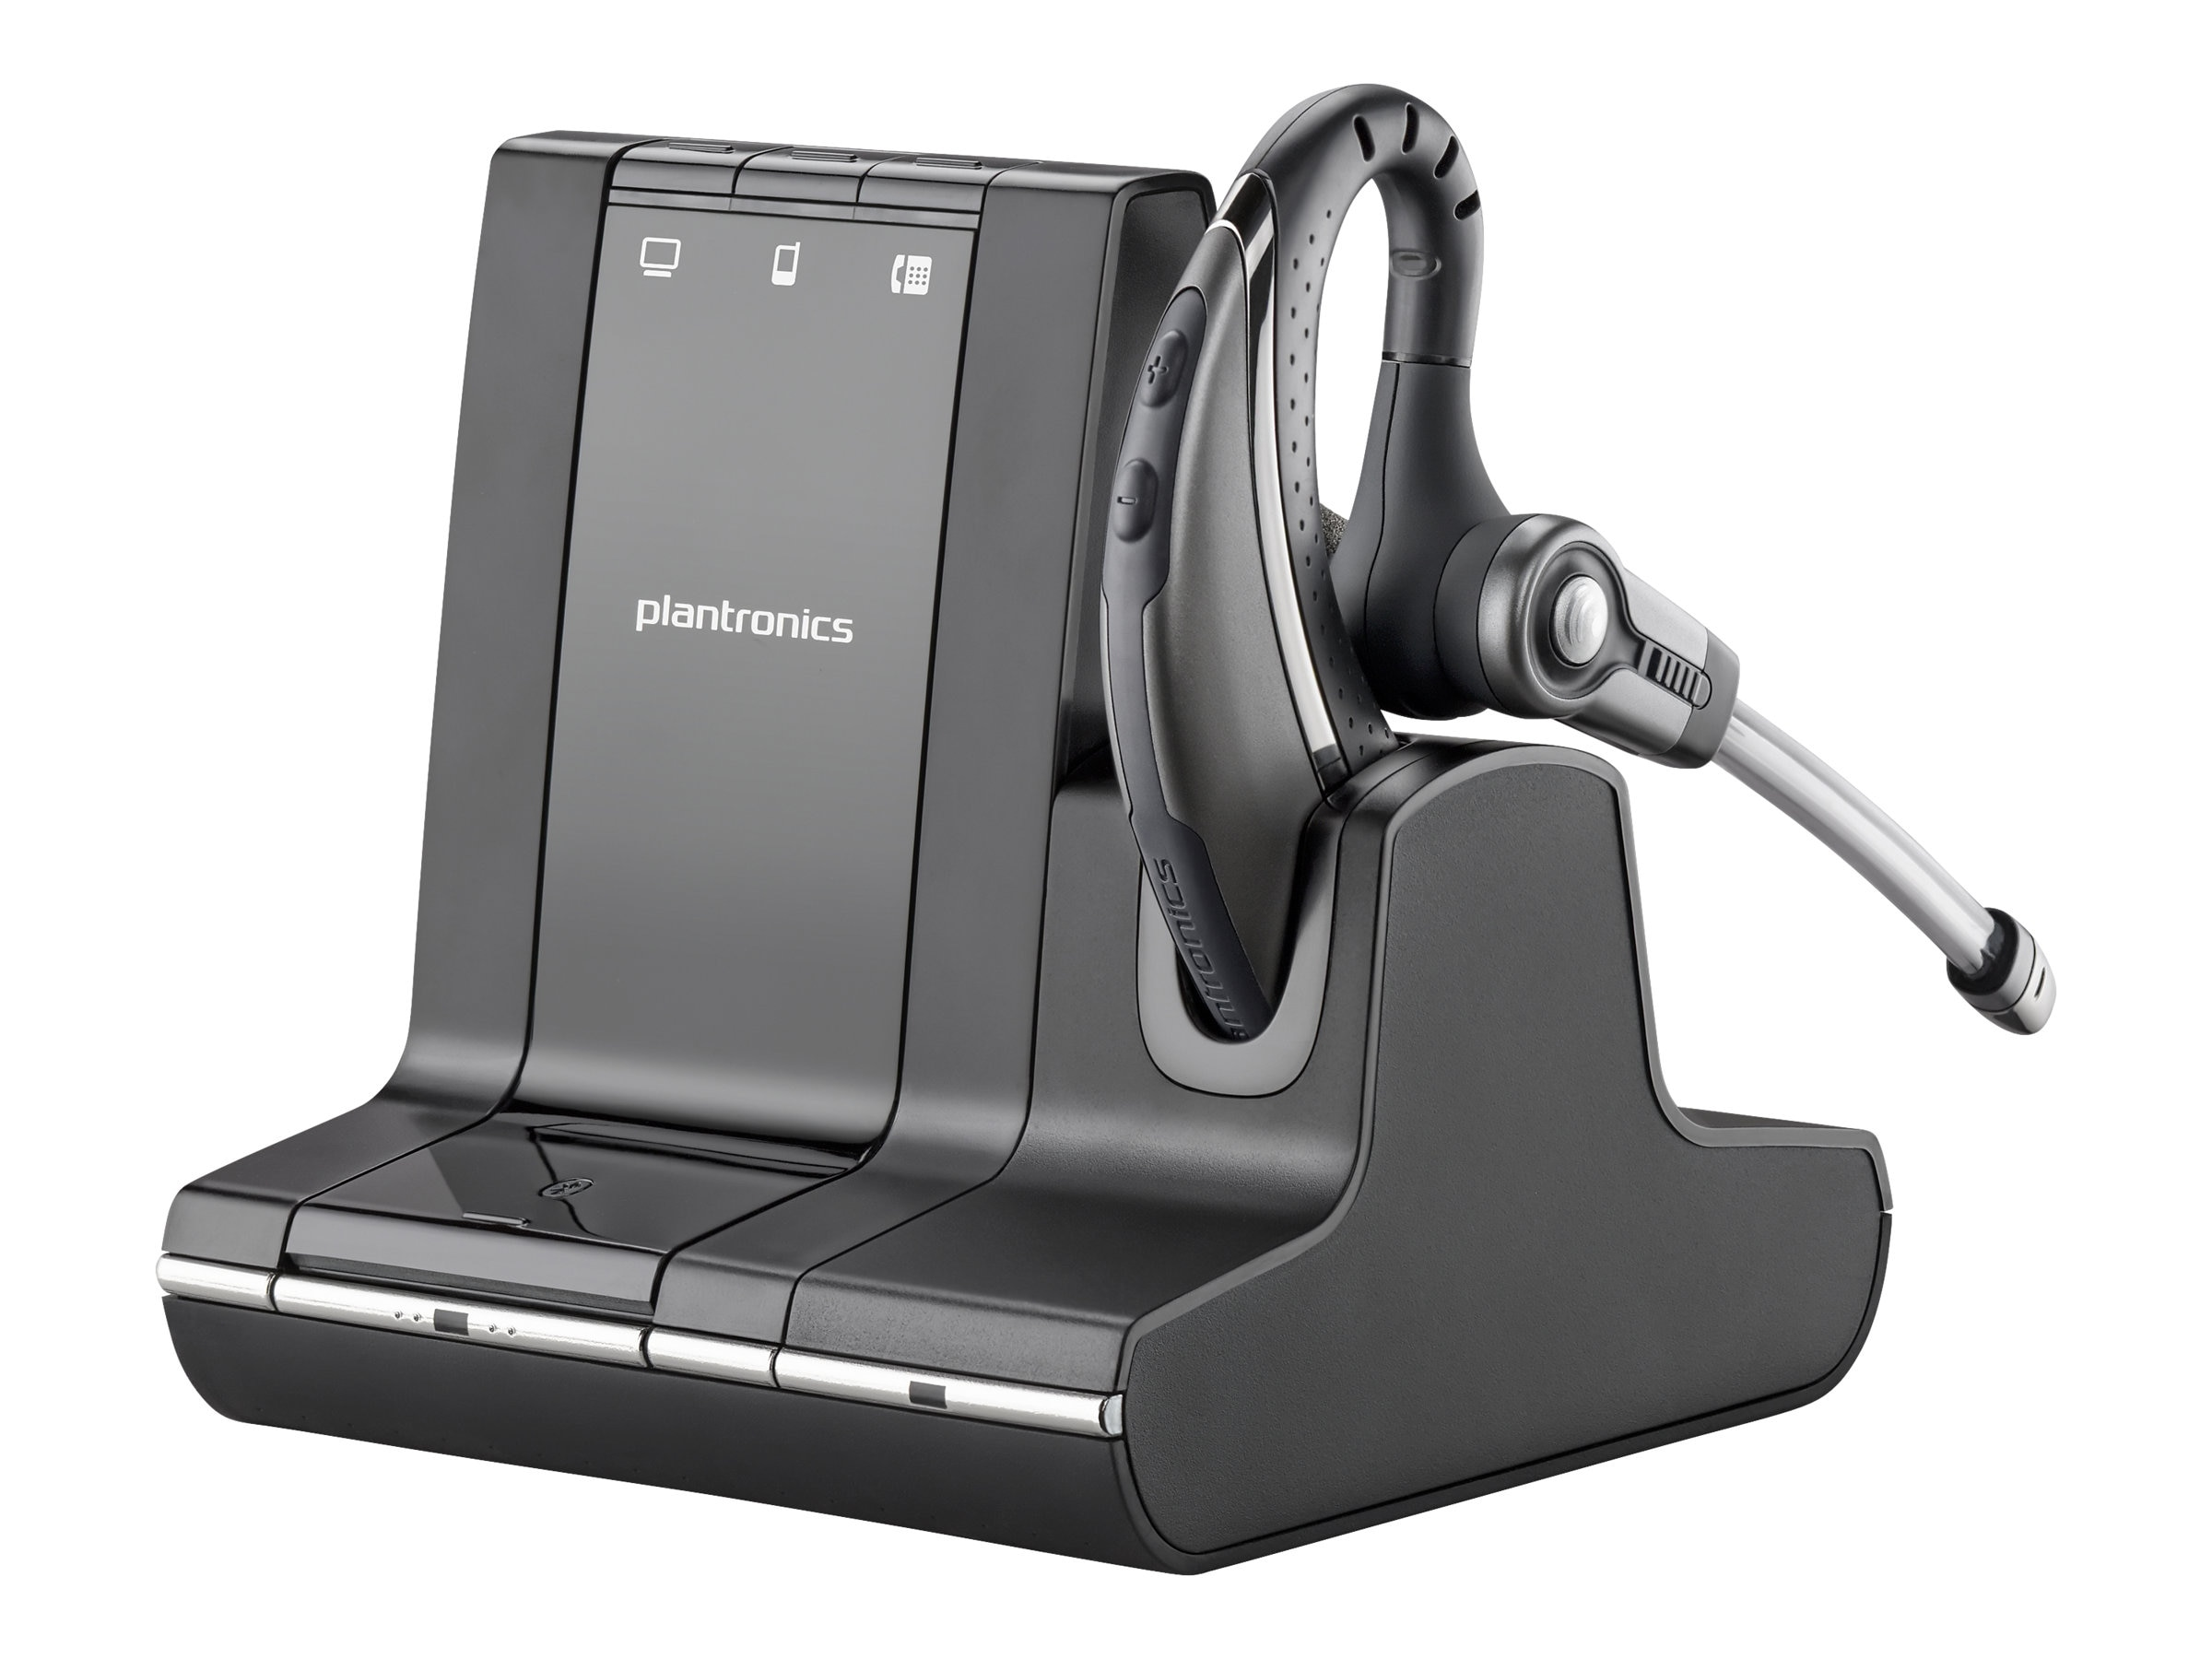 Plantronics Savi W730-M Over-the-Ear Wireless Headset System for MS